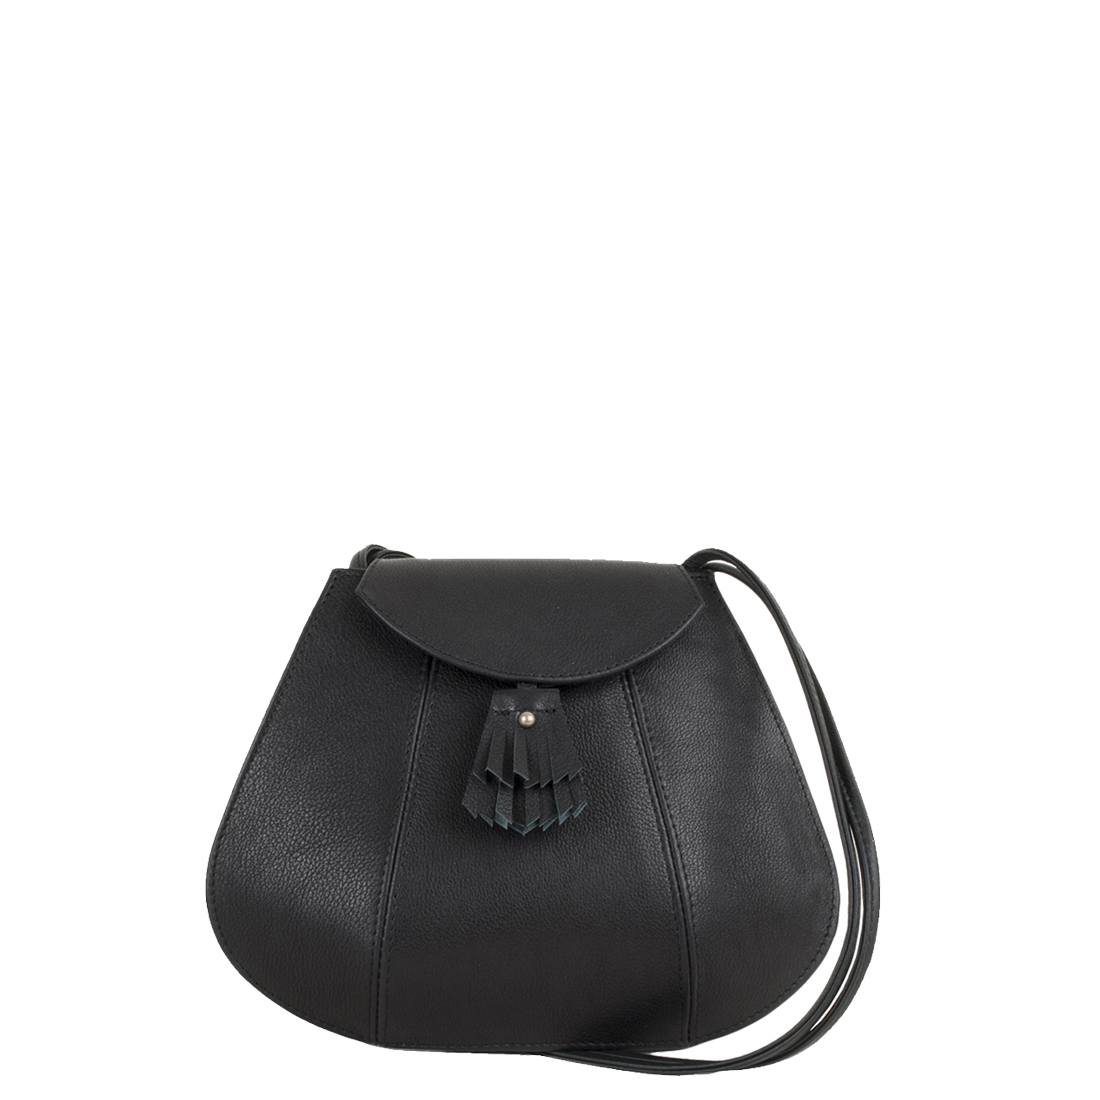 Florence Black Leather Shoulder Bag